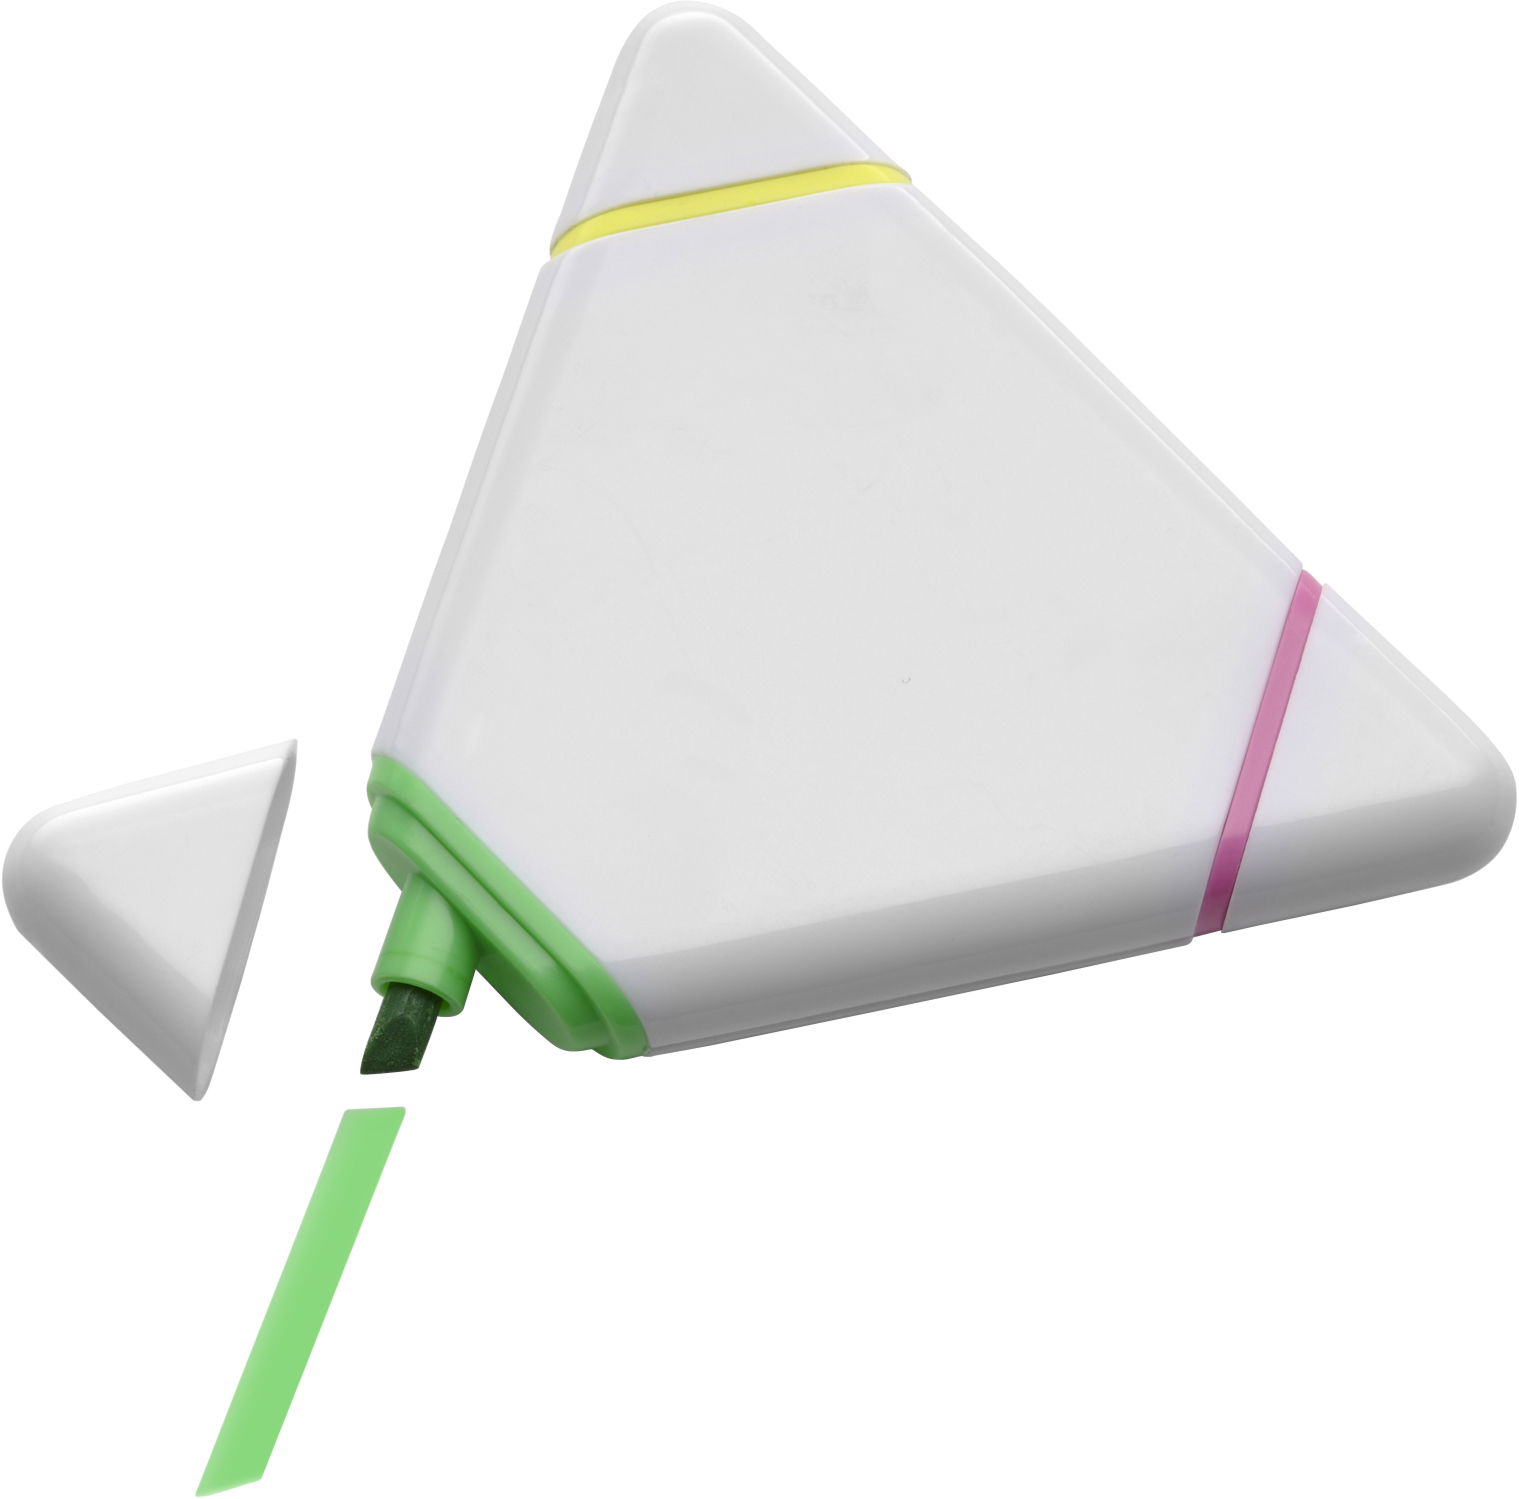 Promotional Plastic triangular text marker.